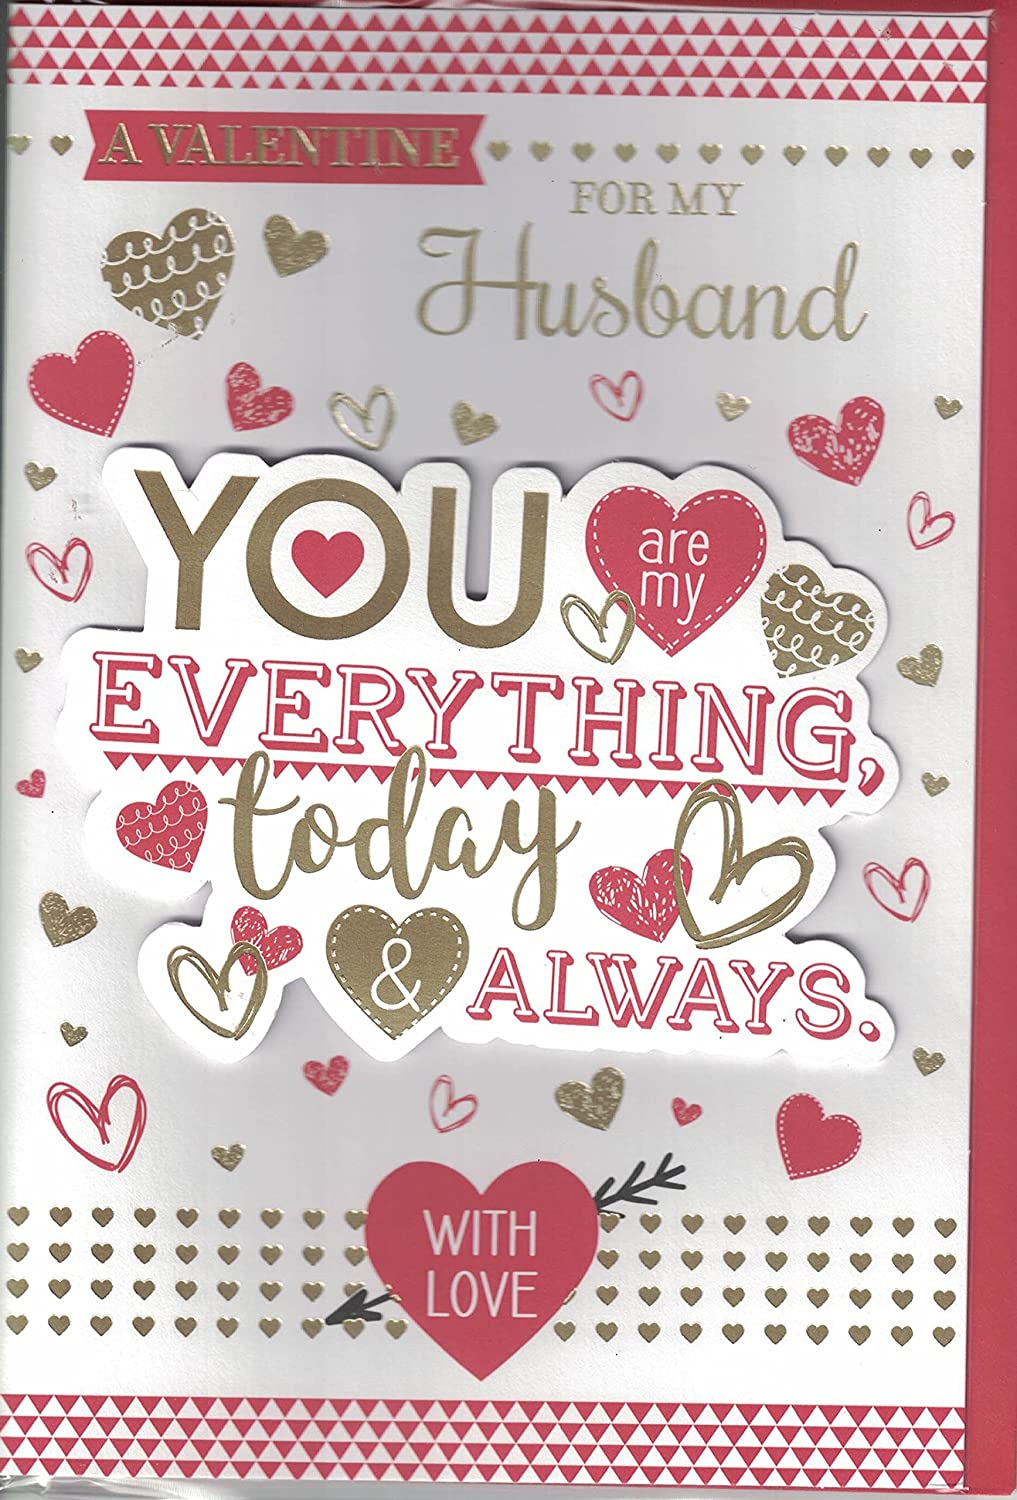 Valentines Day Card A Valentine For My Husband You Are My